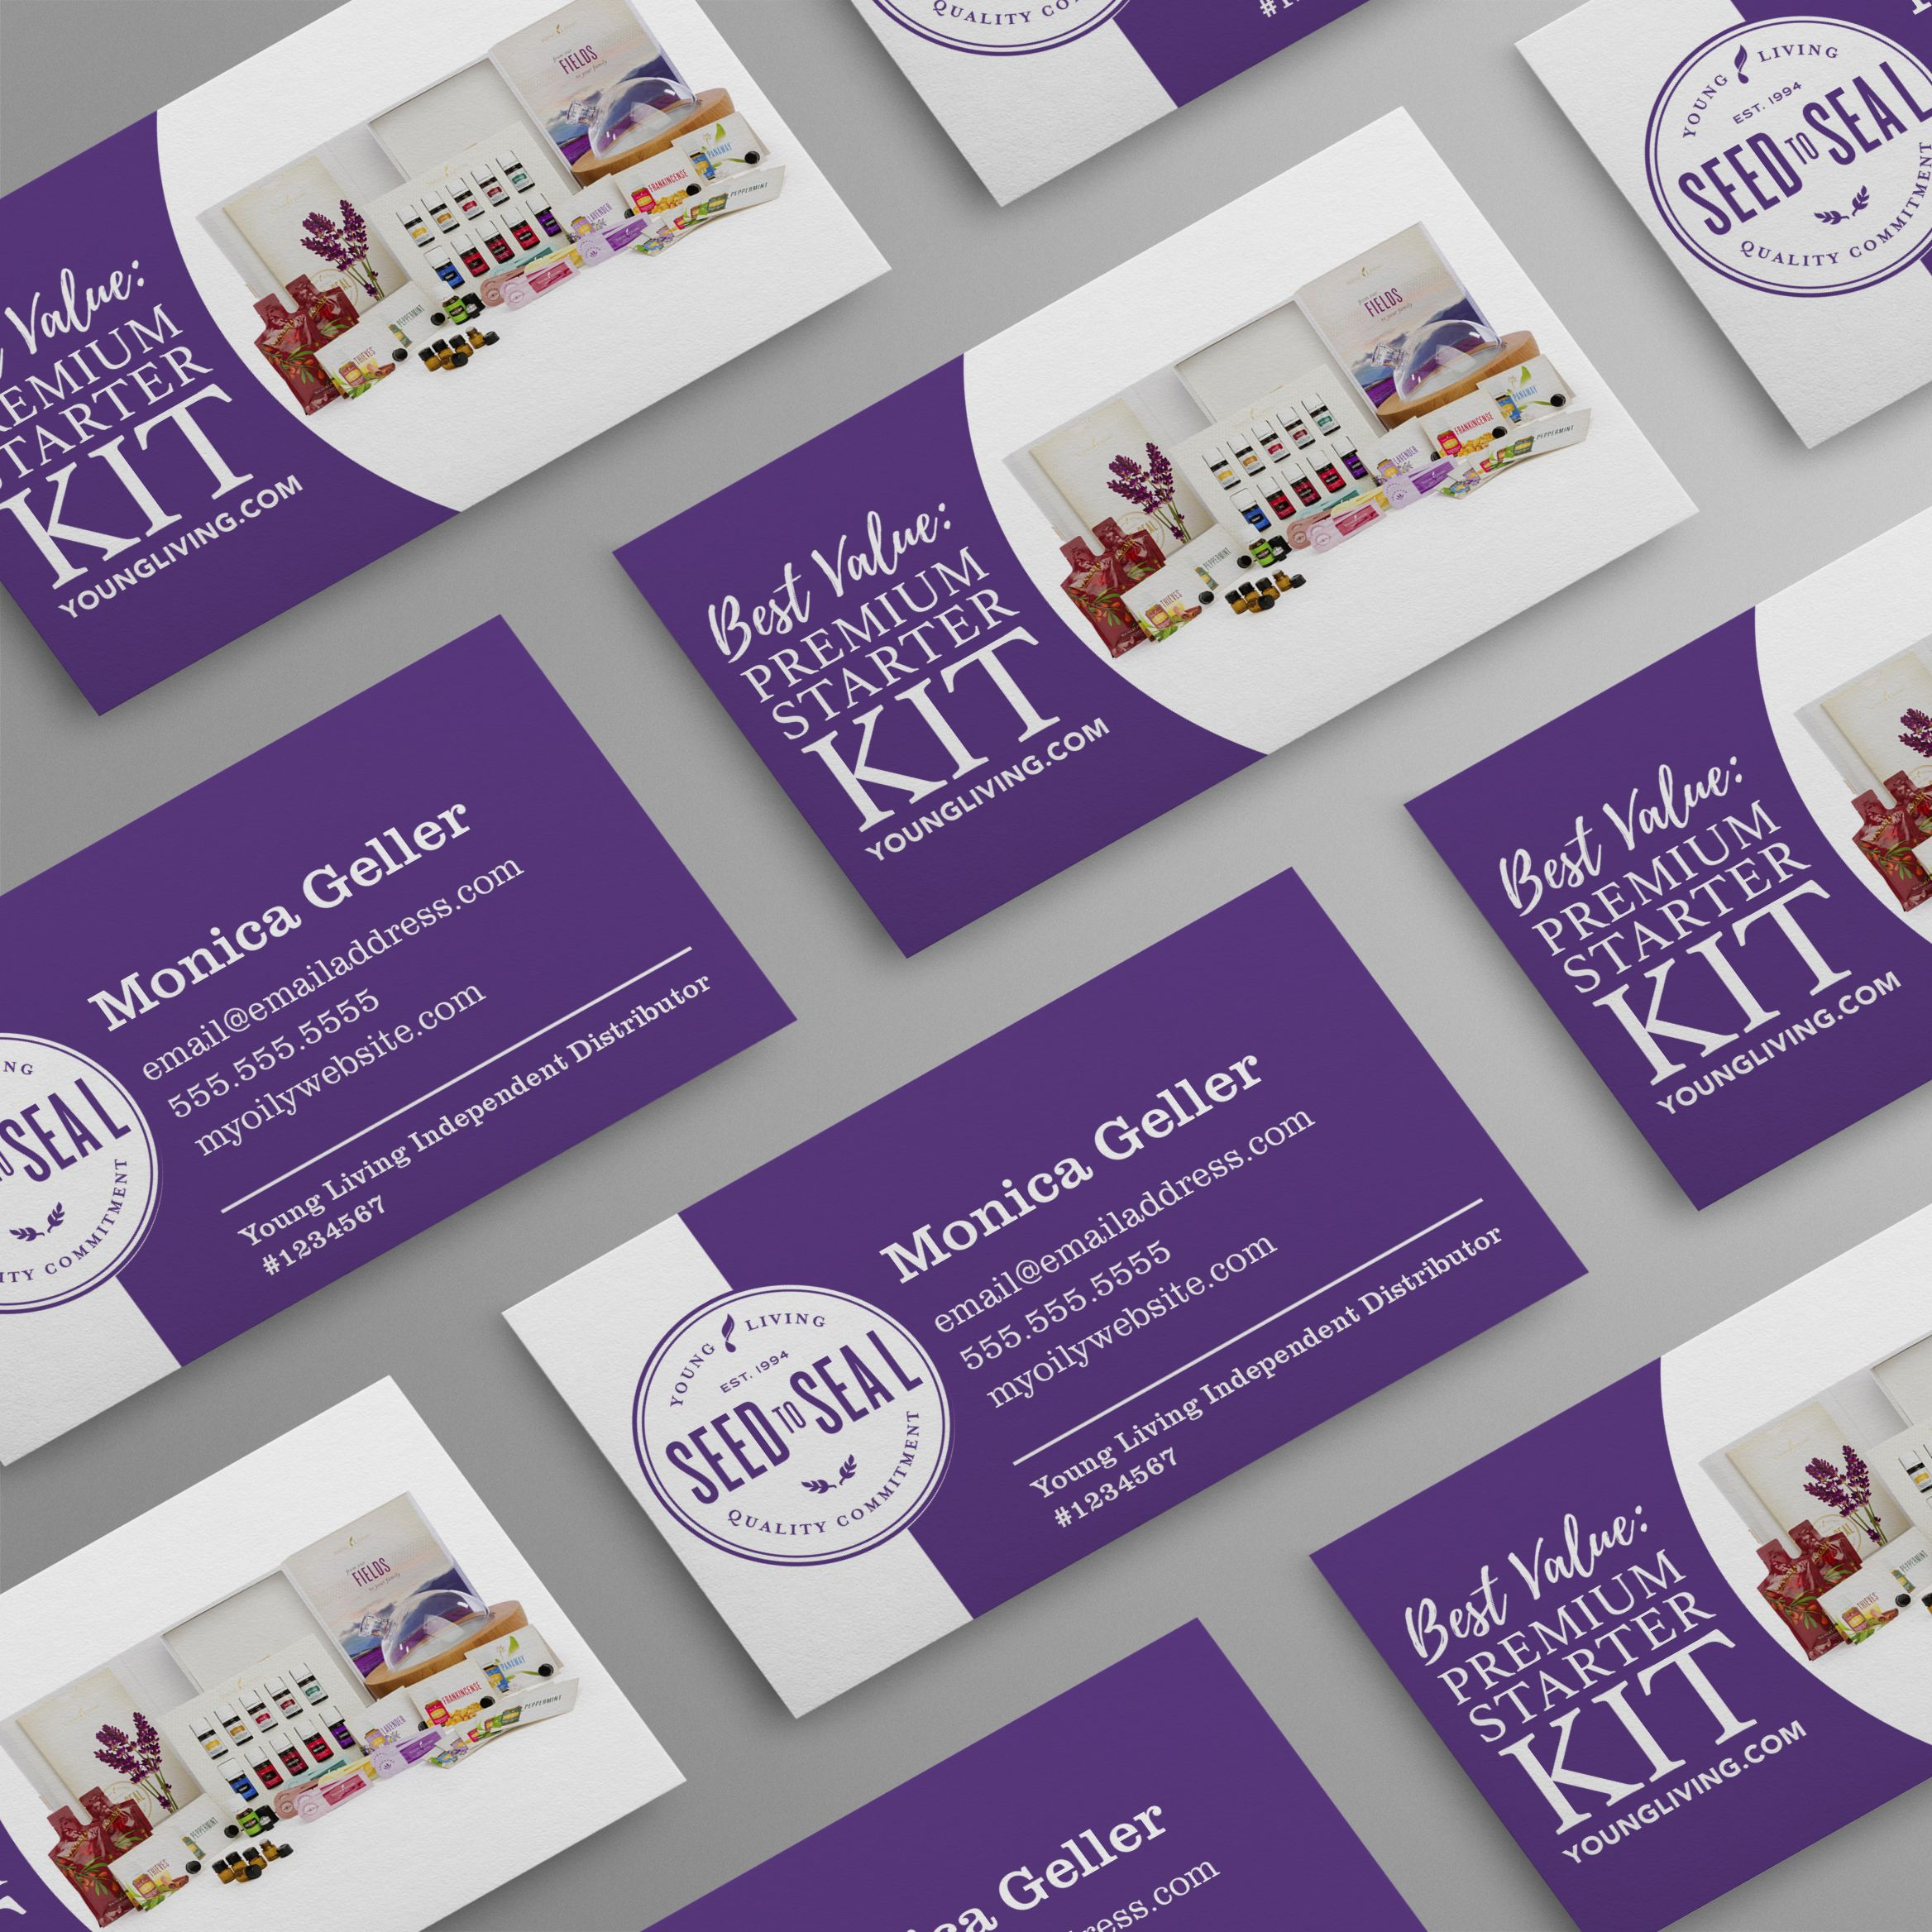 Seed to Seal logo with Premium Starter Kit Business Card